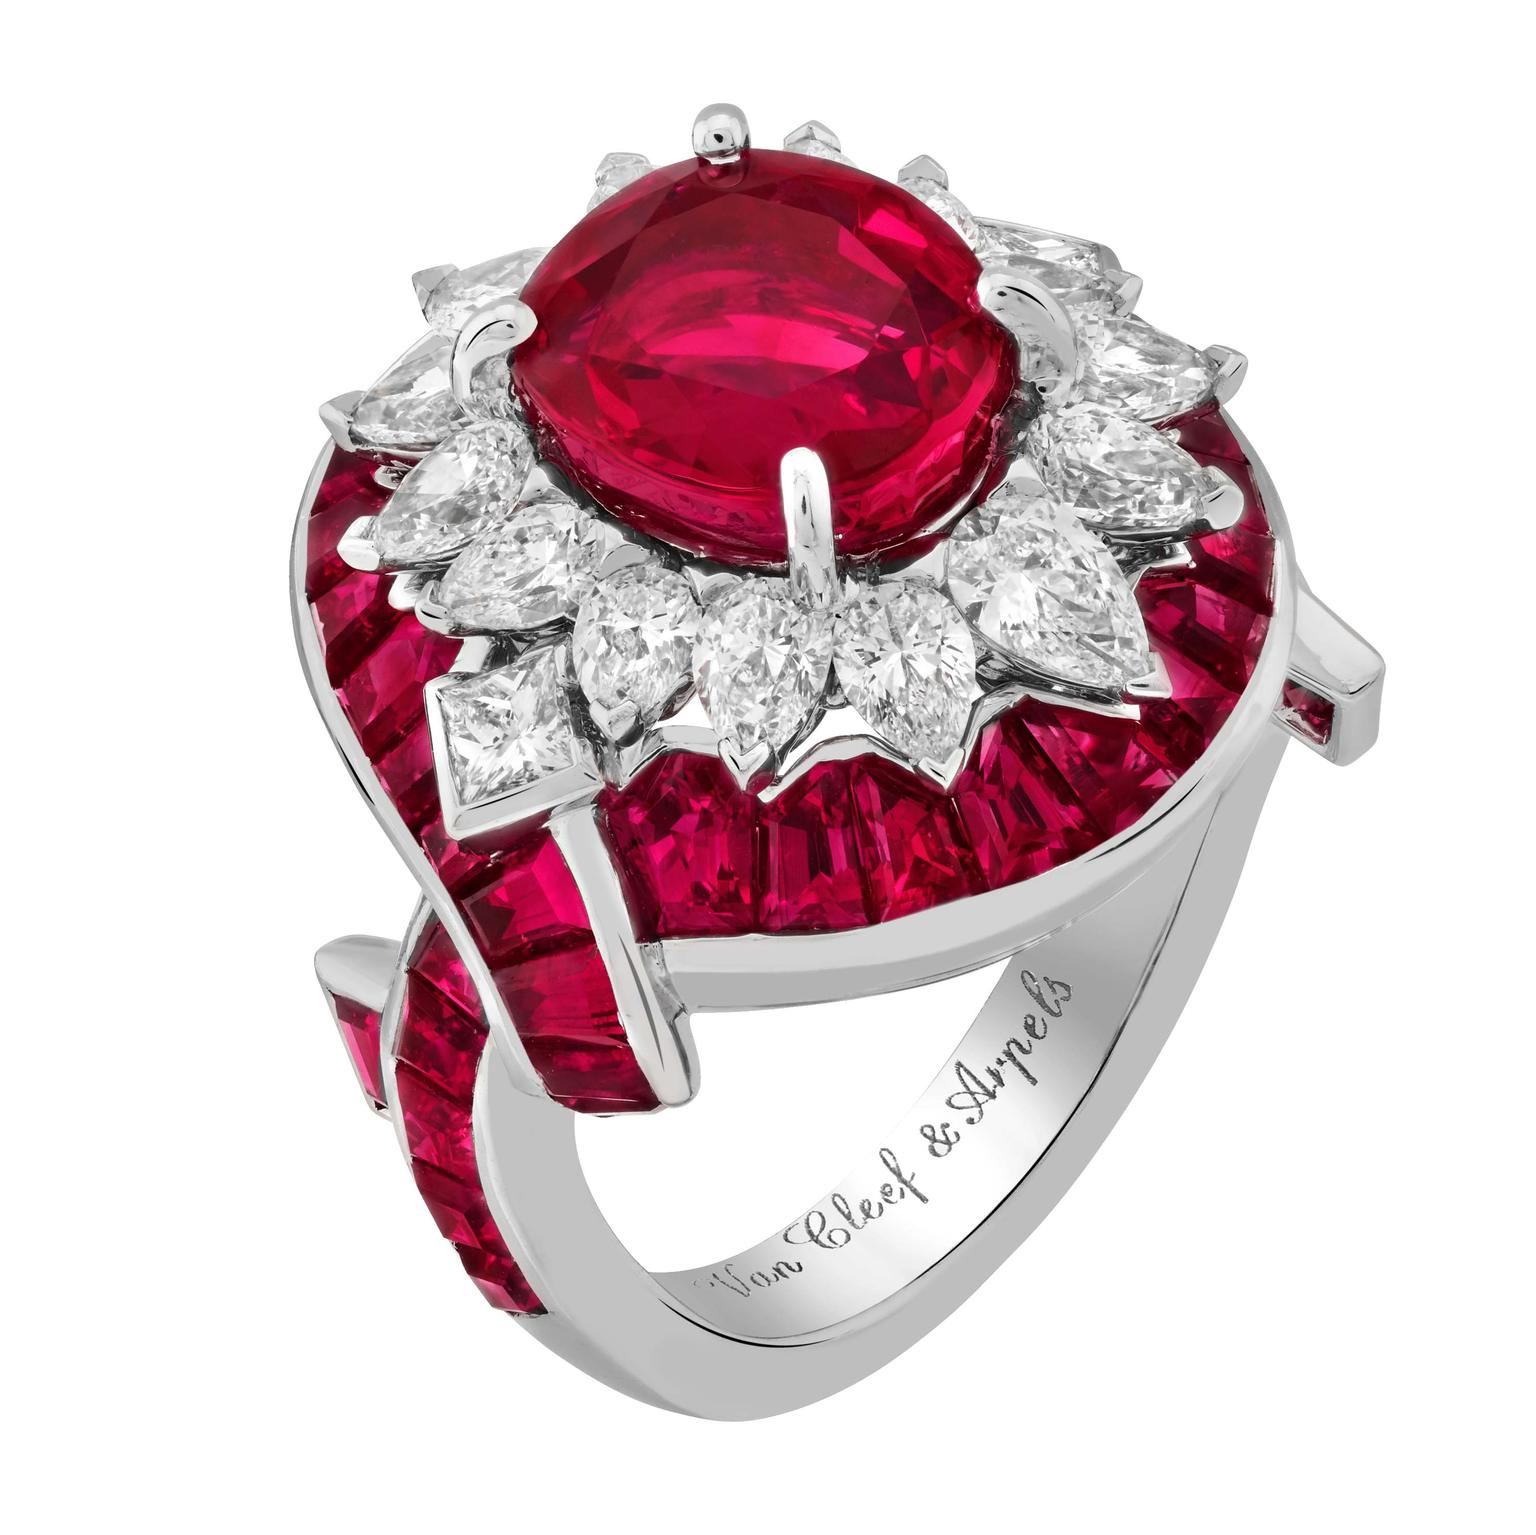 Van Cleef & Arpels Filtro d'Amore ring Romeo and Juliet jewels